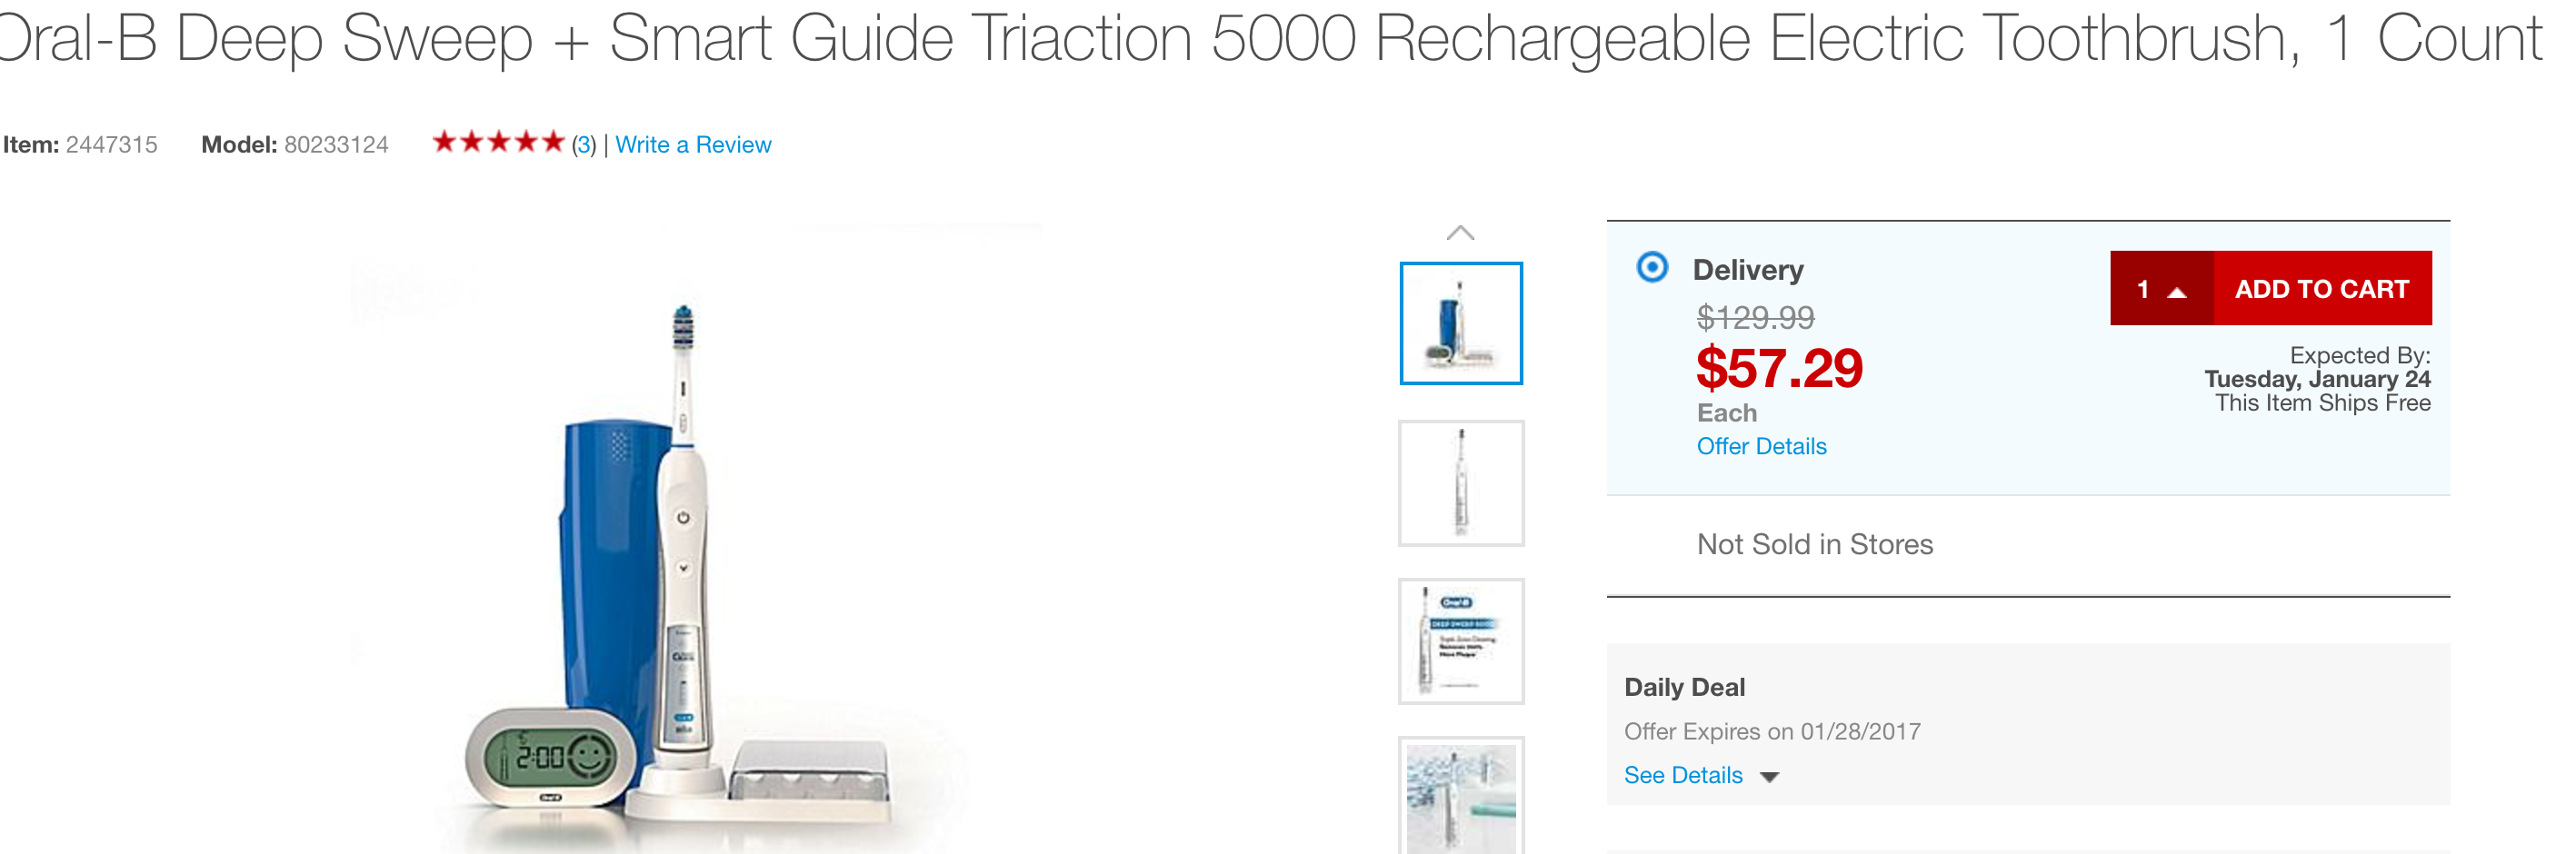 oral-b-deep-sweep-smart-guide-triaction-5000-rechargeable-electric-toothbrush-4